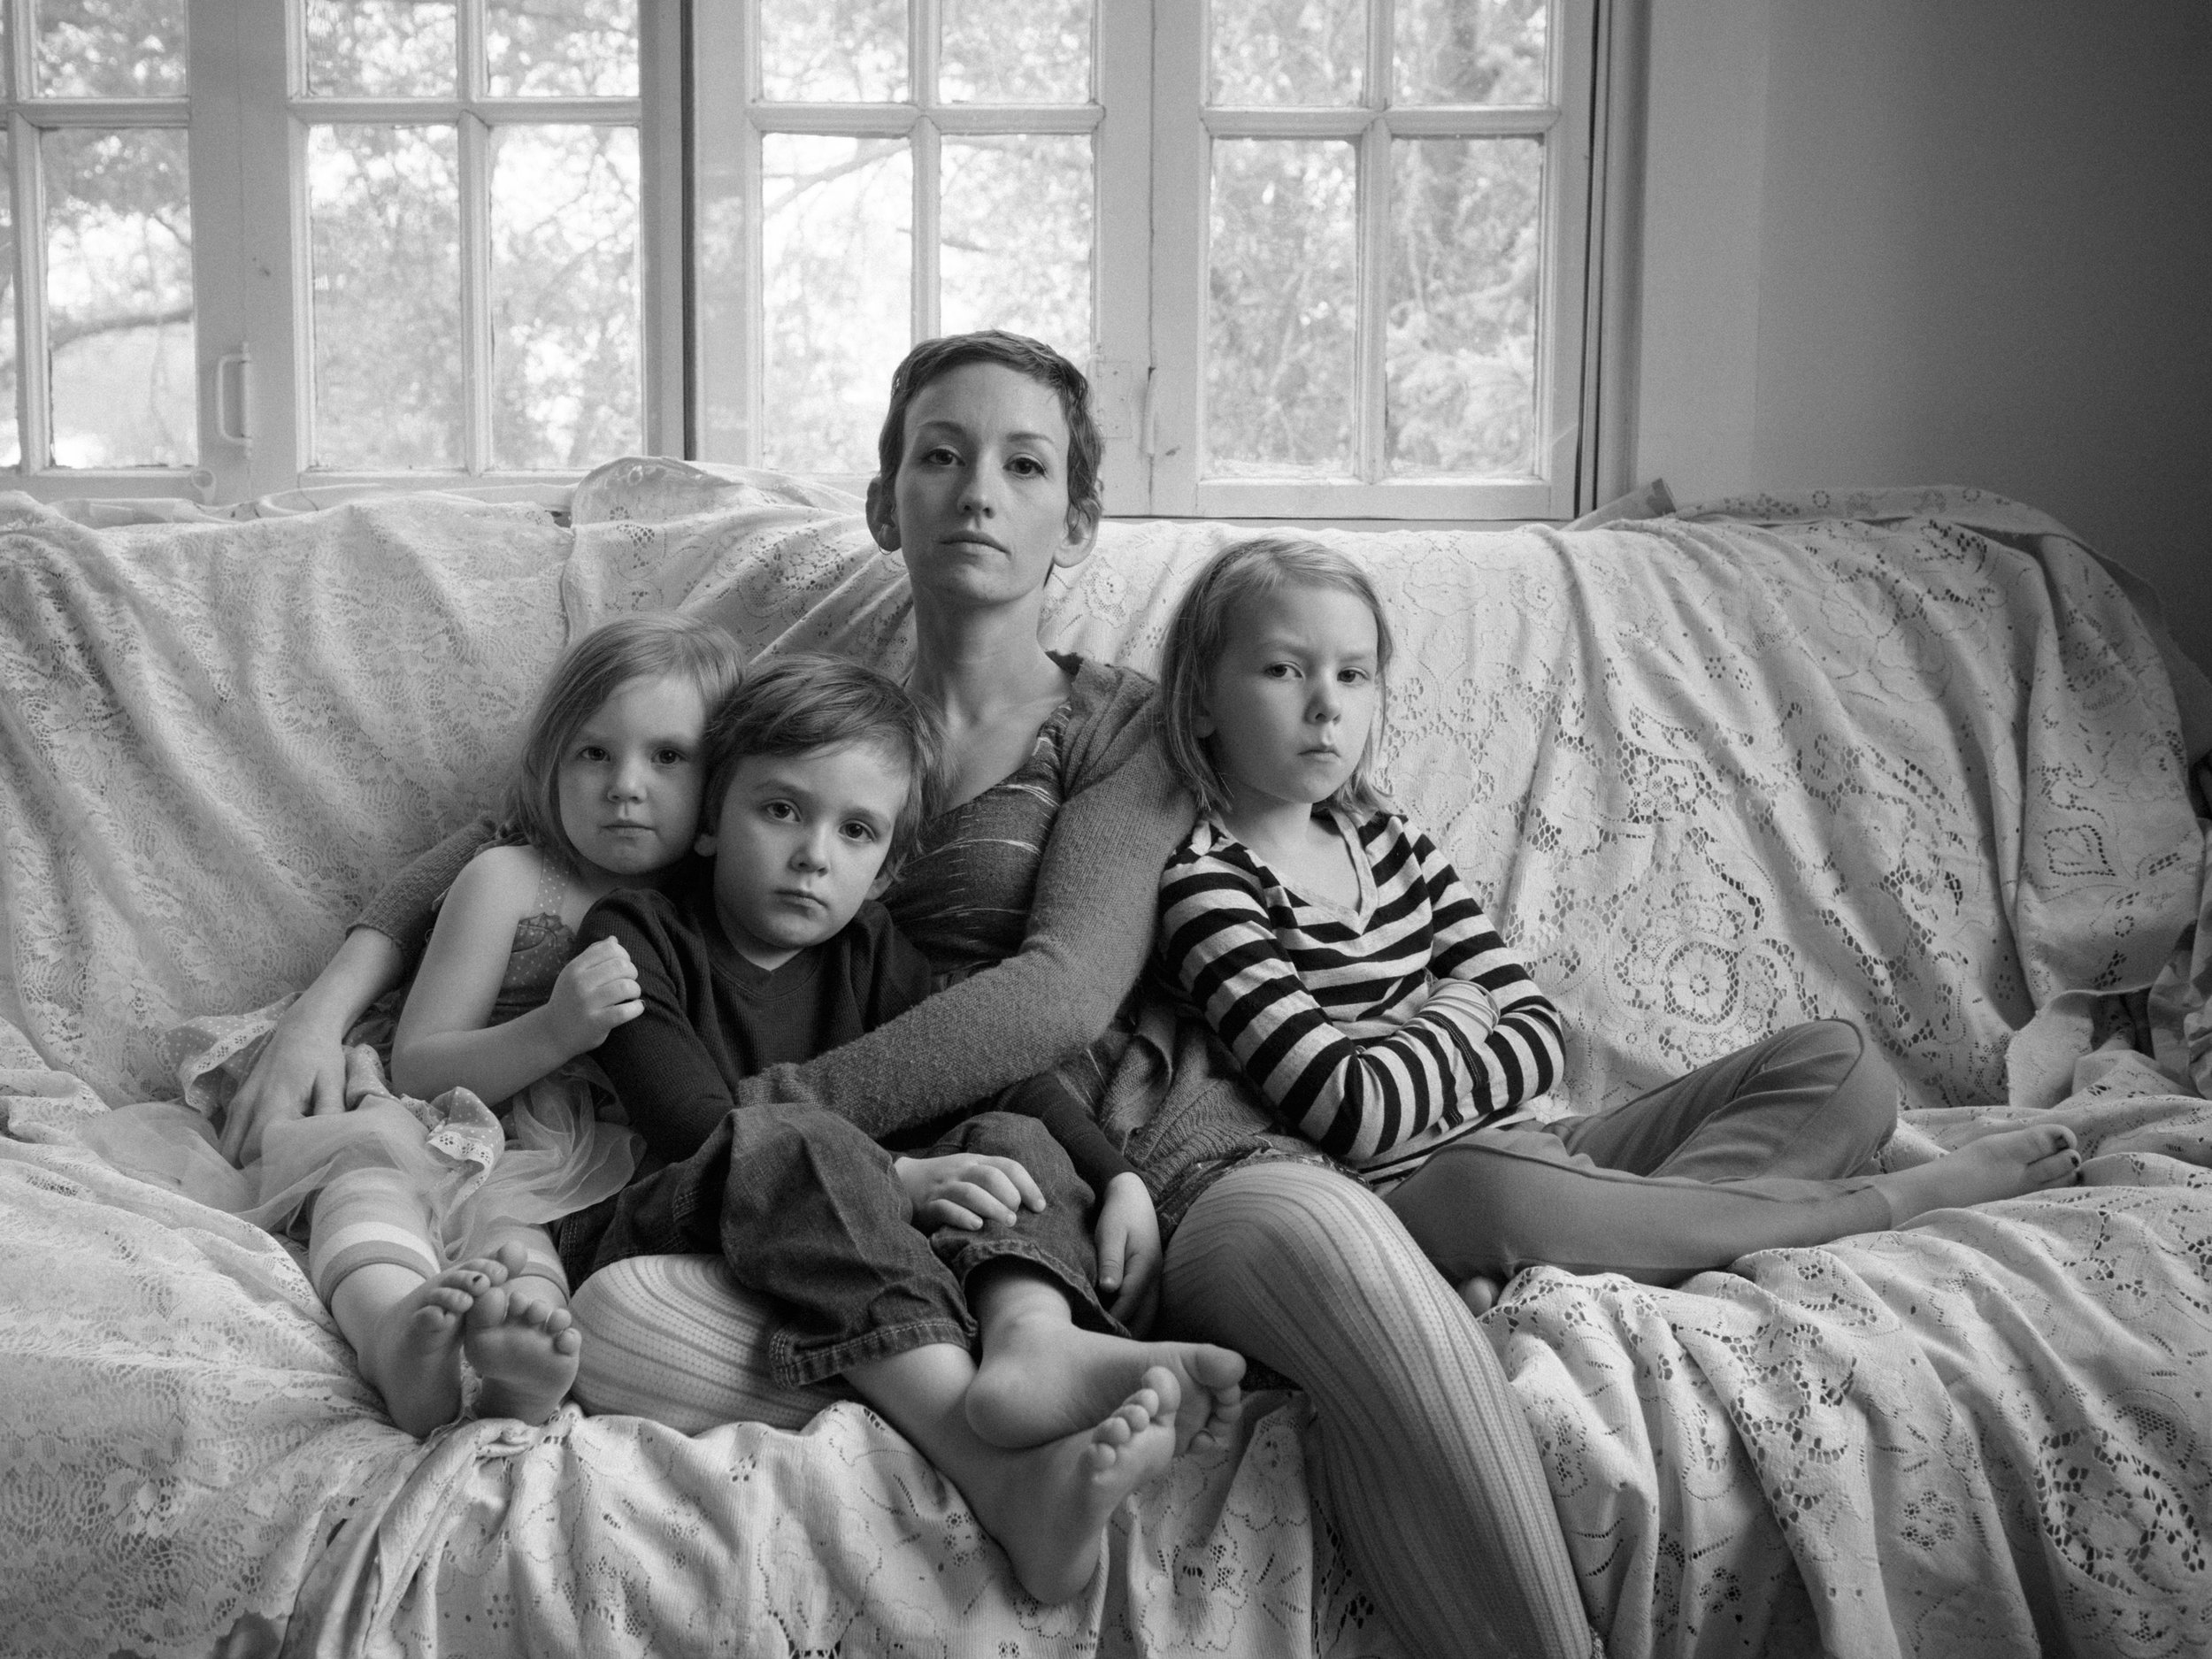 Leah & Children - Artistic Indoor Portraits